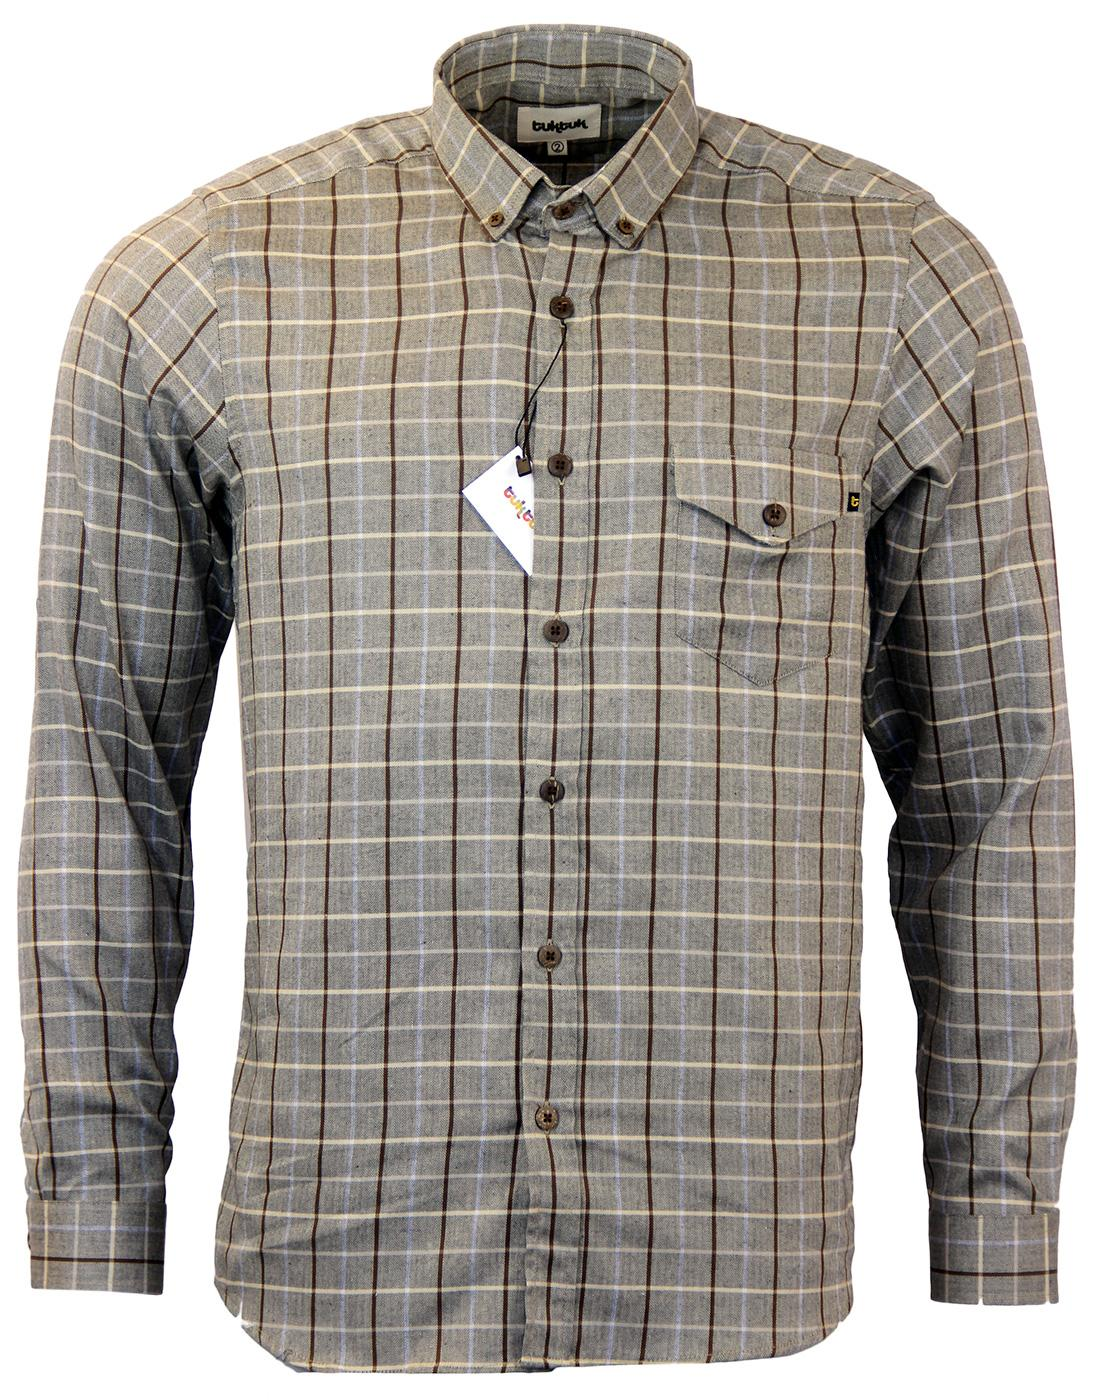 Larry TUKTUK Retro Check Brushed Cotton Shirt